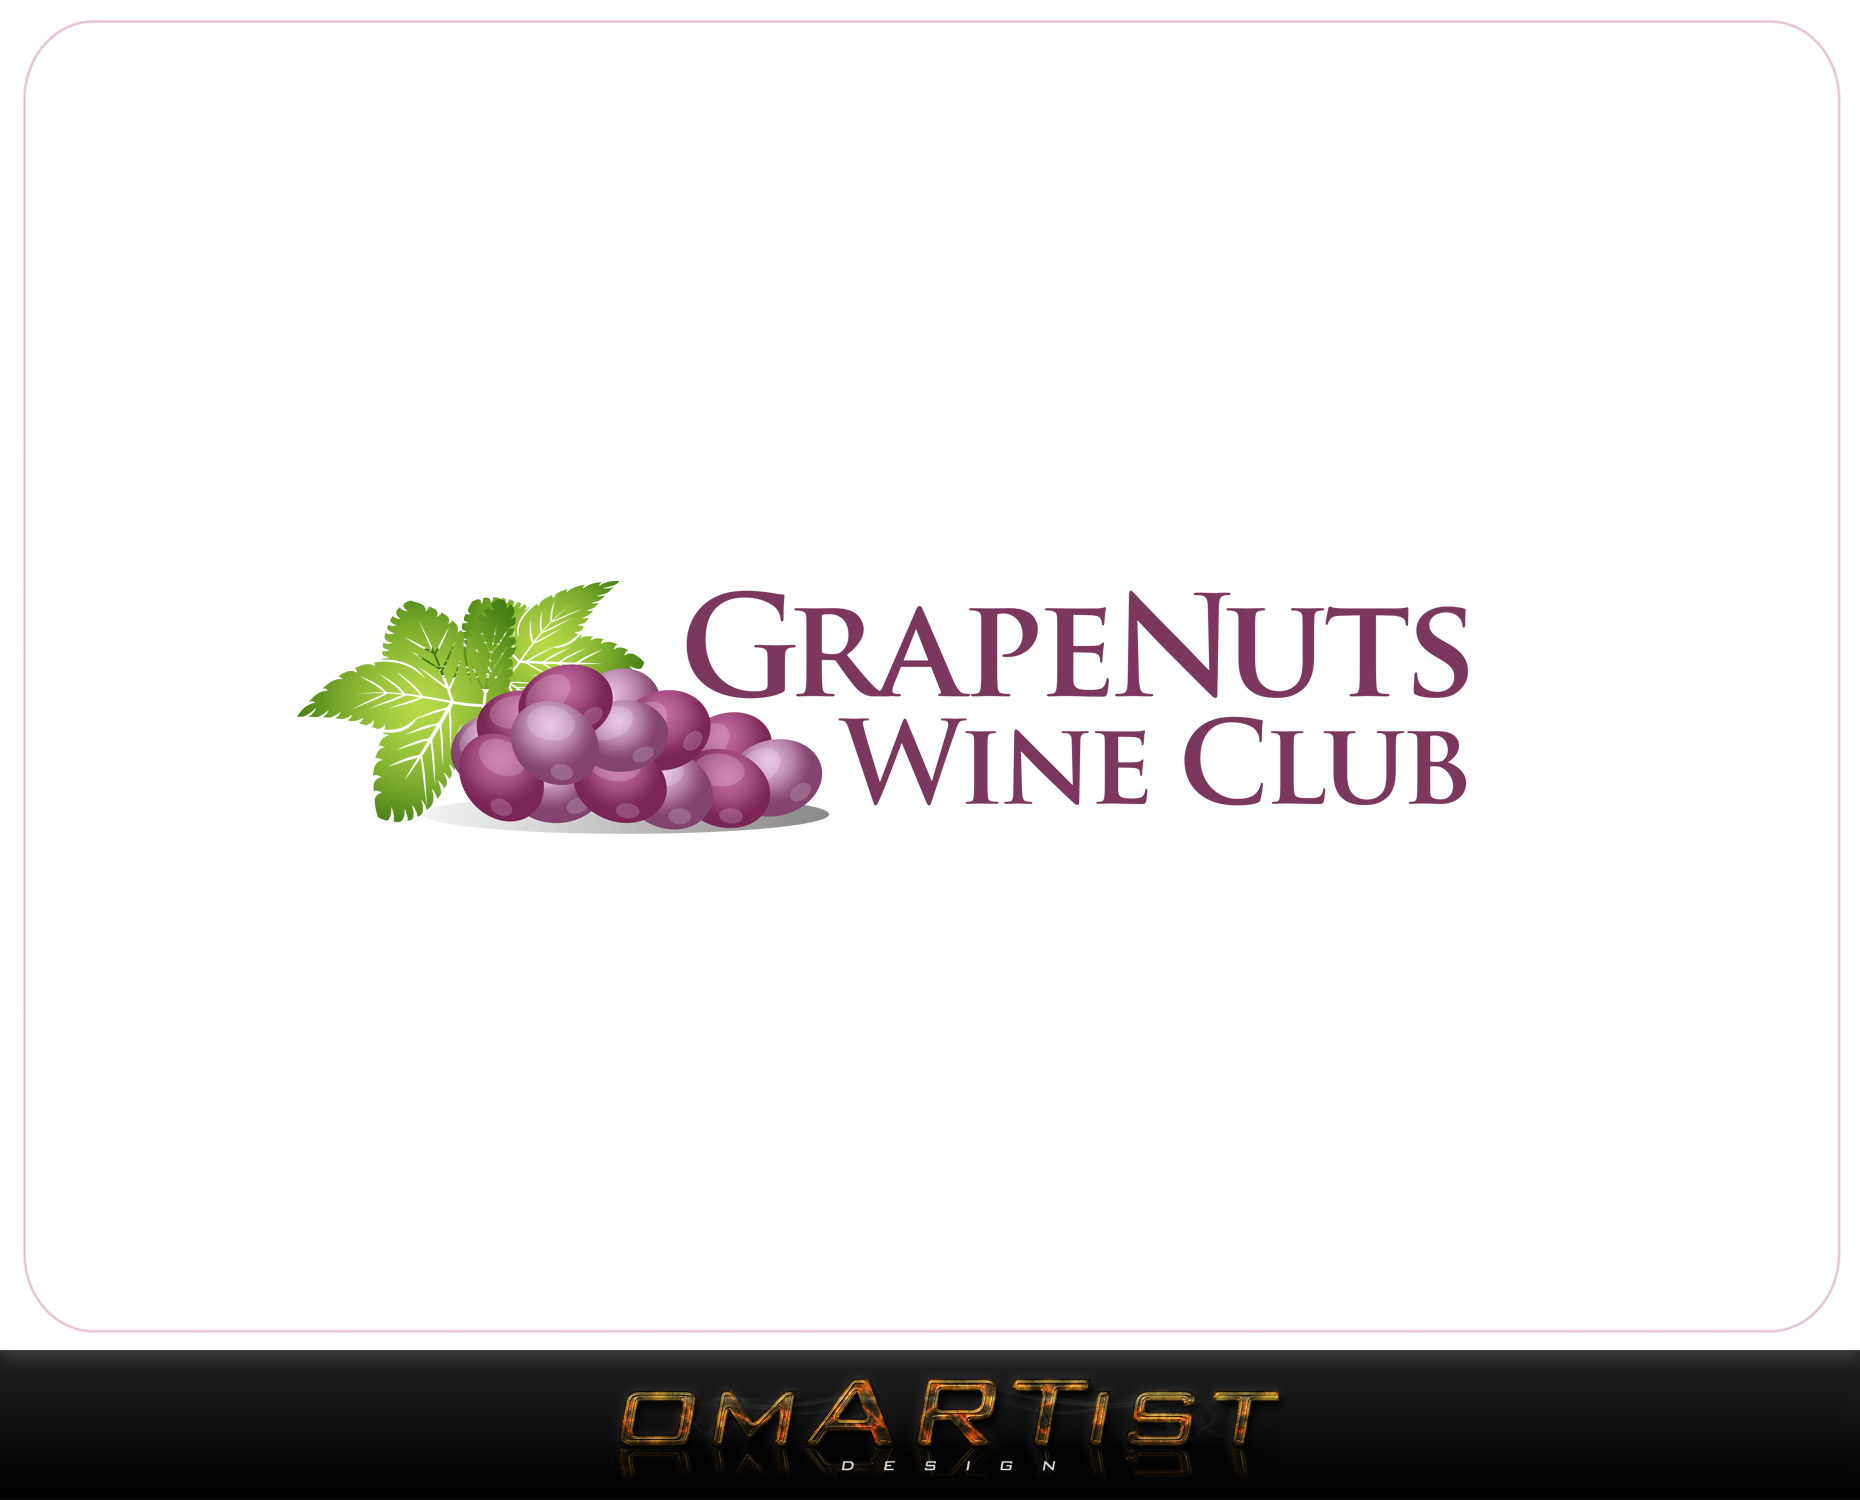 Logo Design by omARTist - Entry No. 129 in the Logo Design Contest Artistic Logo Design for Grape Nuts Wine Club.